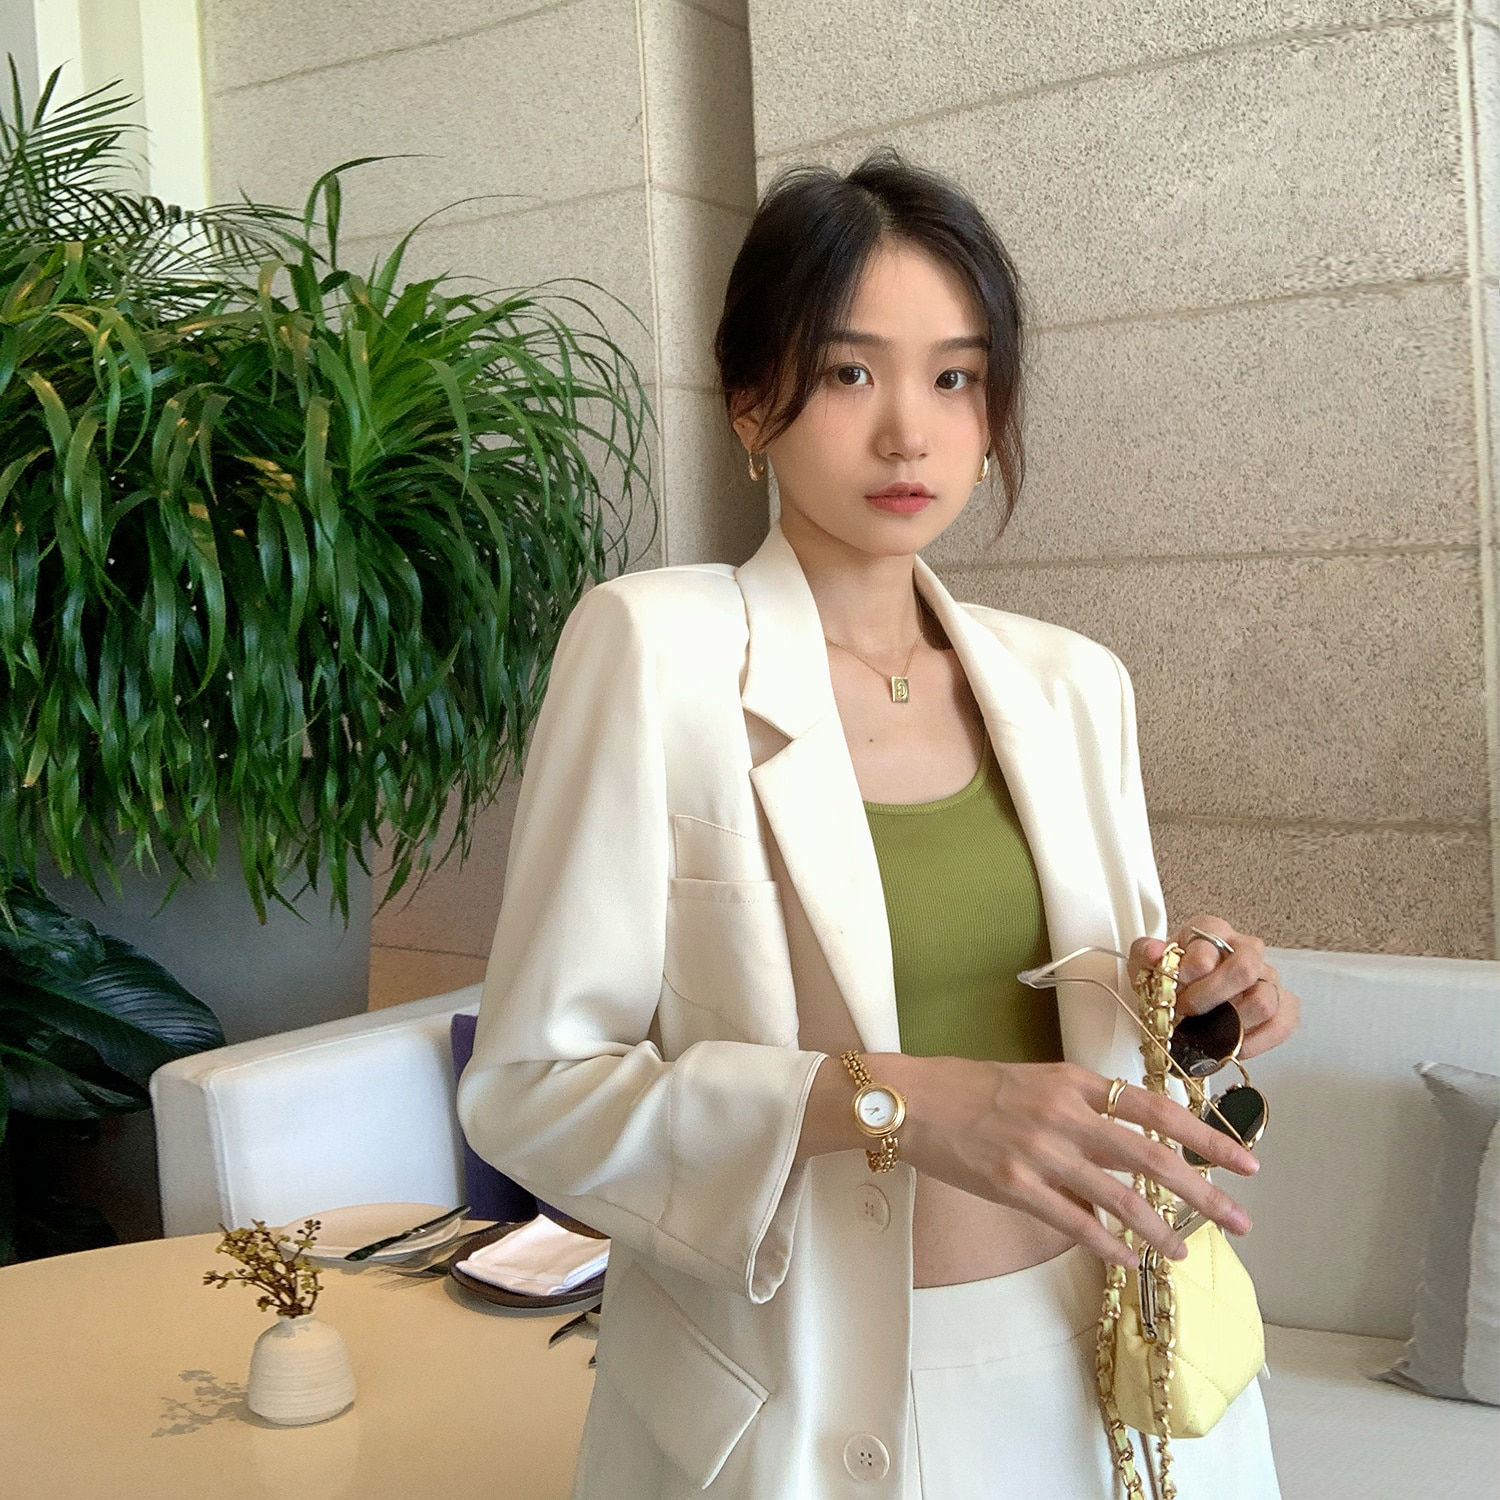 Women's Suits City Hunter Cool Thin Summer 2021 New White Seven Sleeve Suit Coat Female